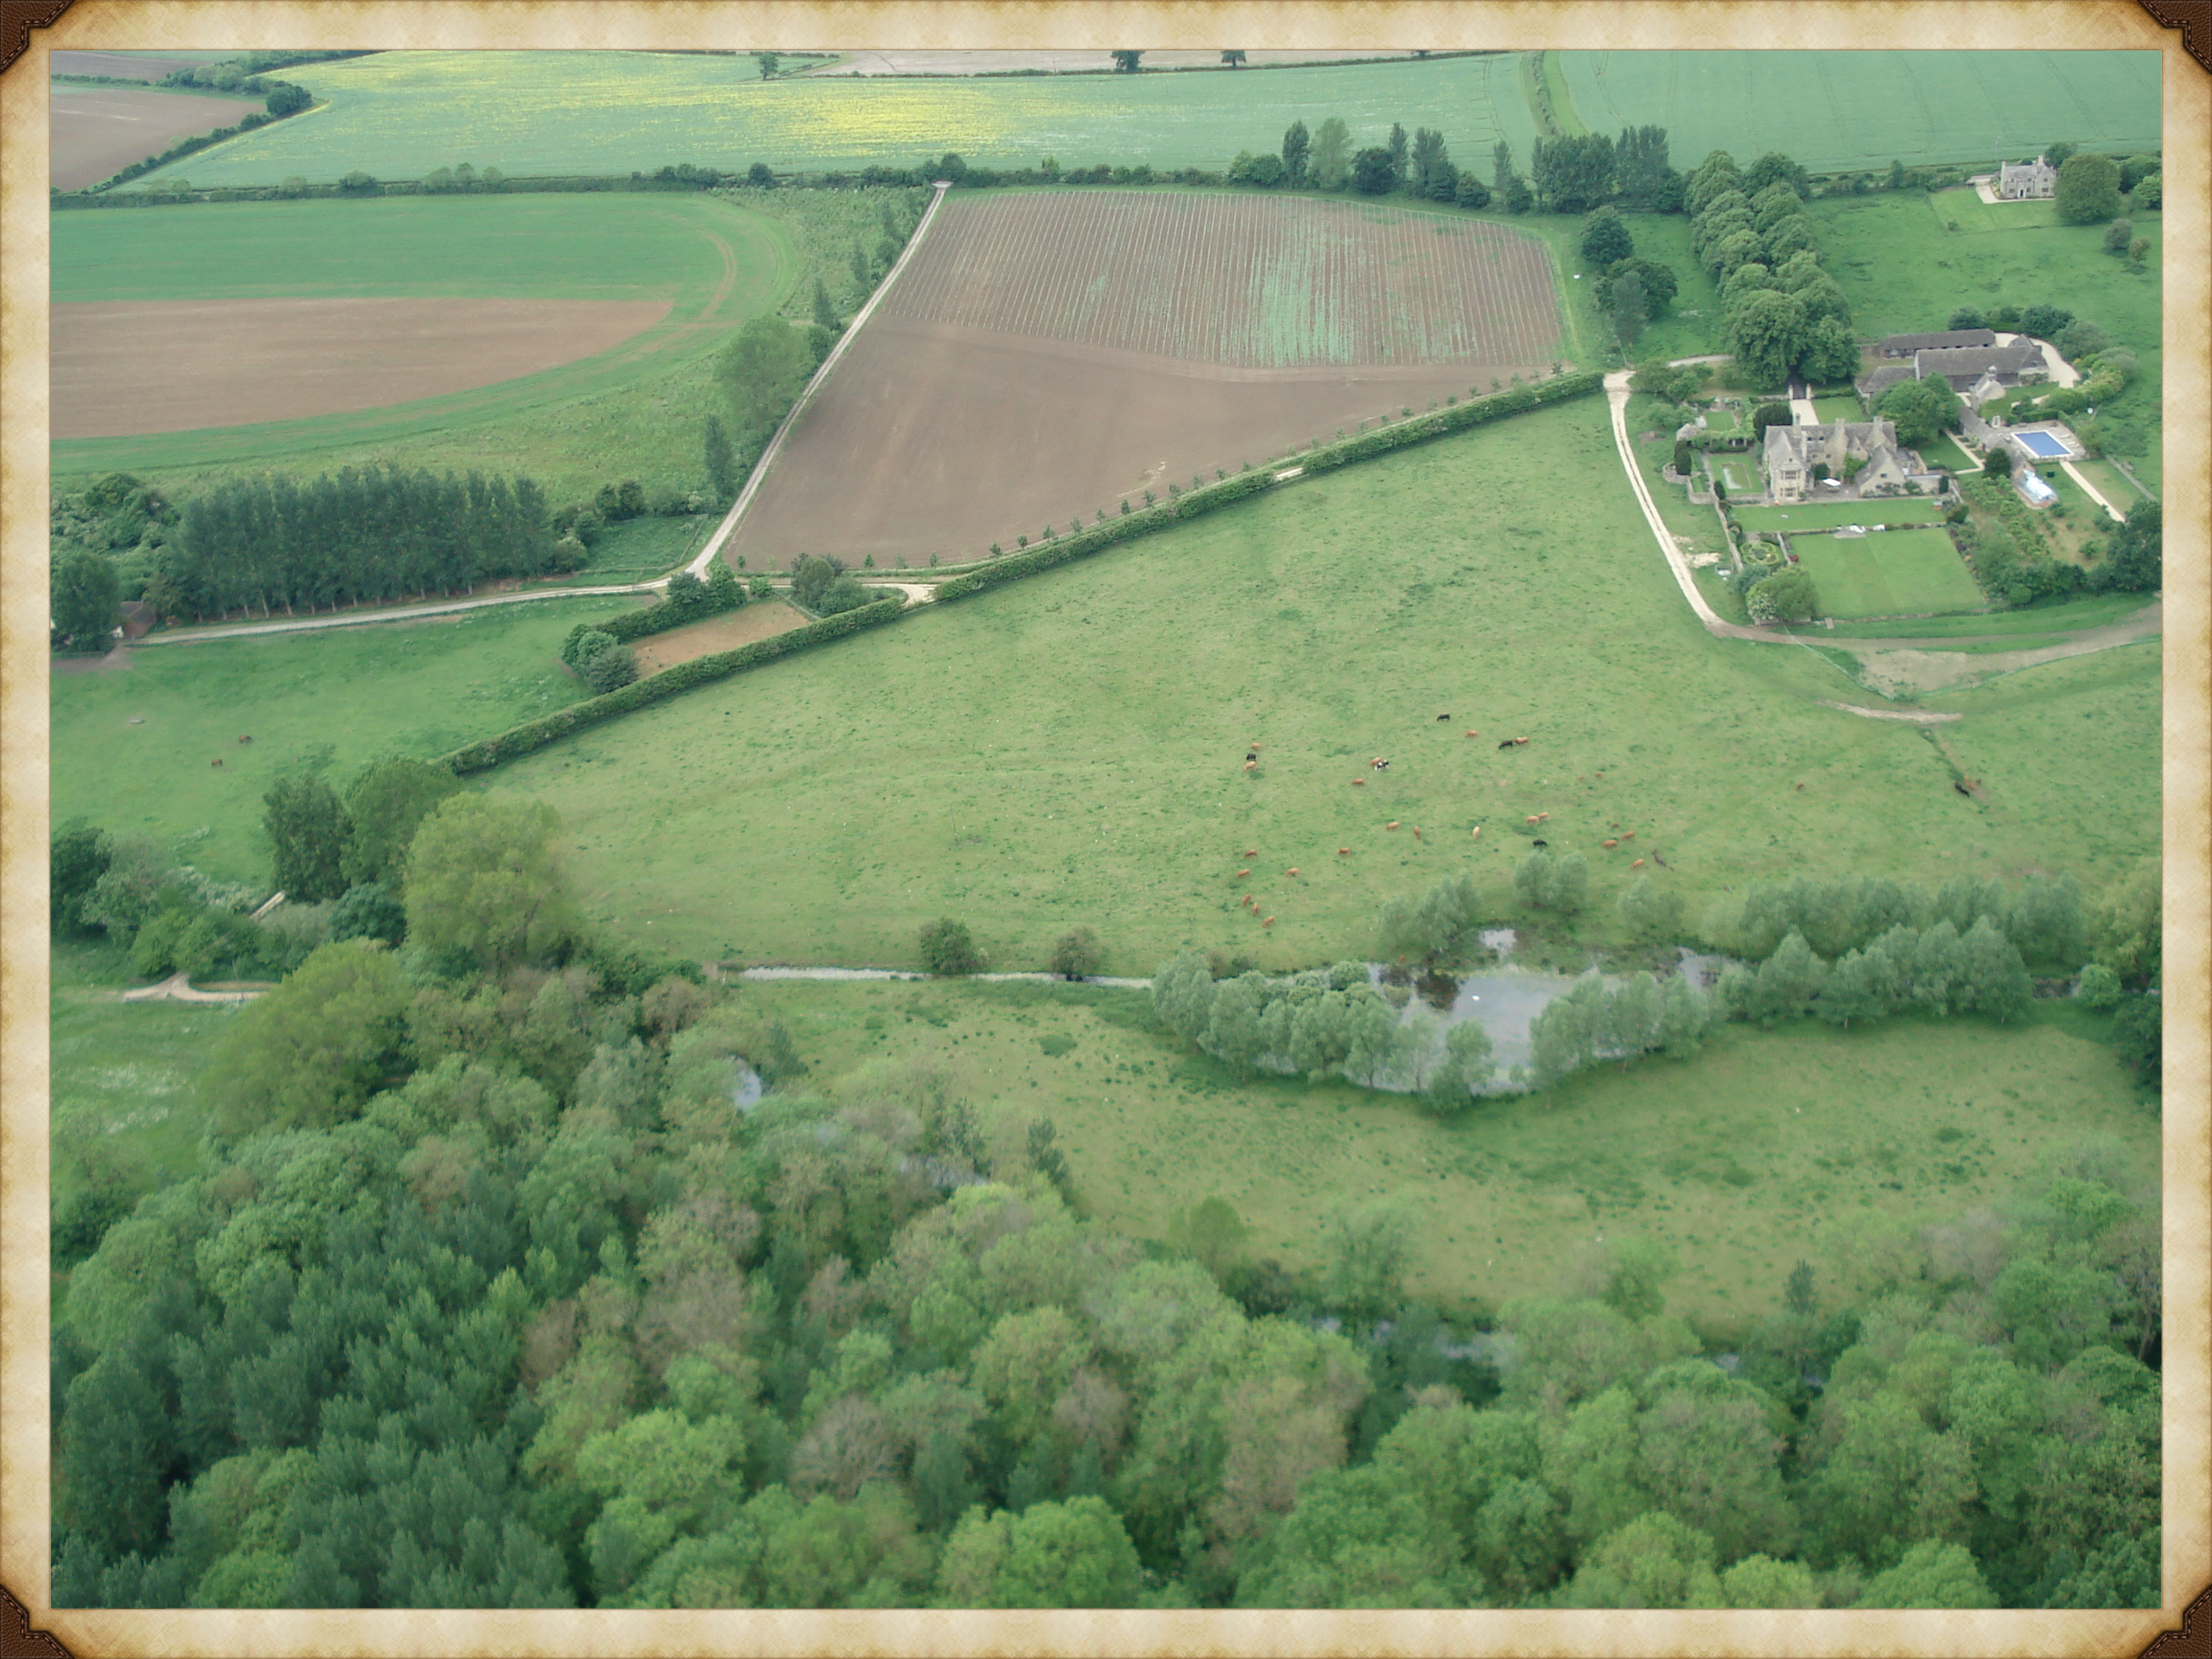 Photo by Neil B. Maw showing the outline of the Mediaeval Village.